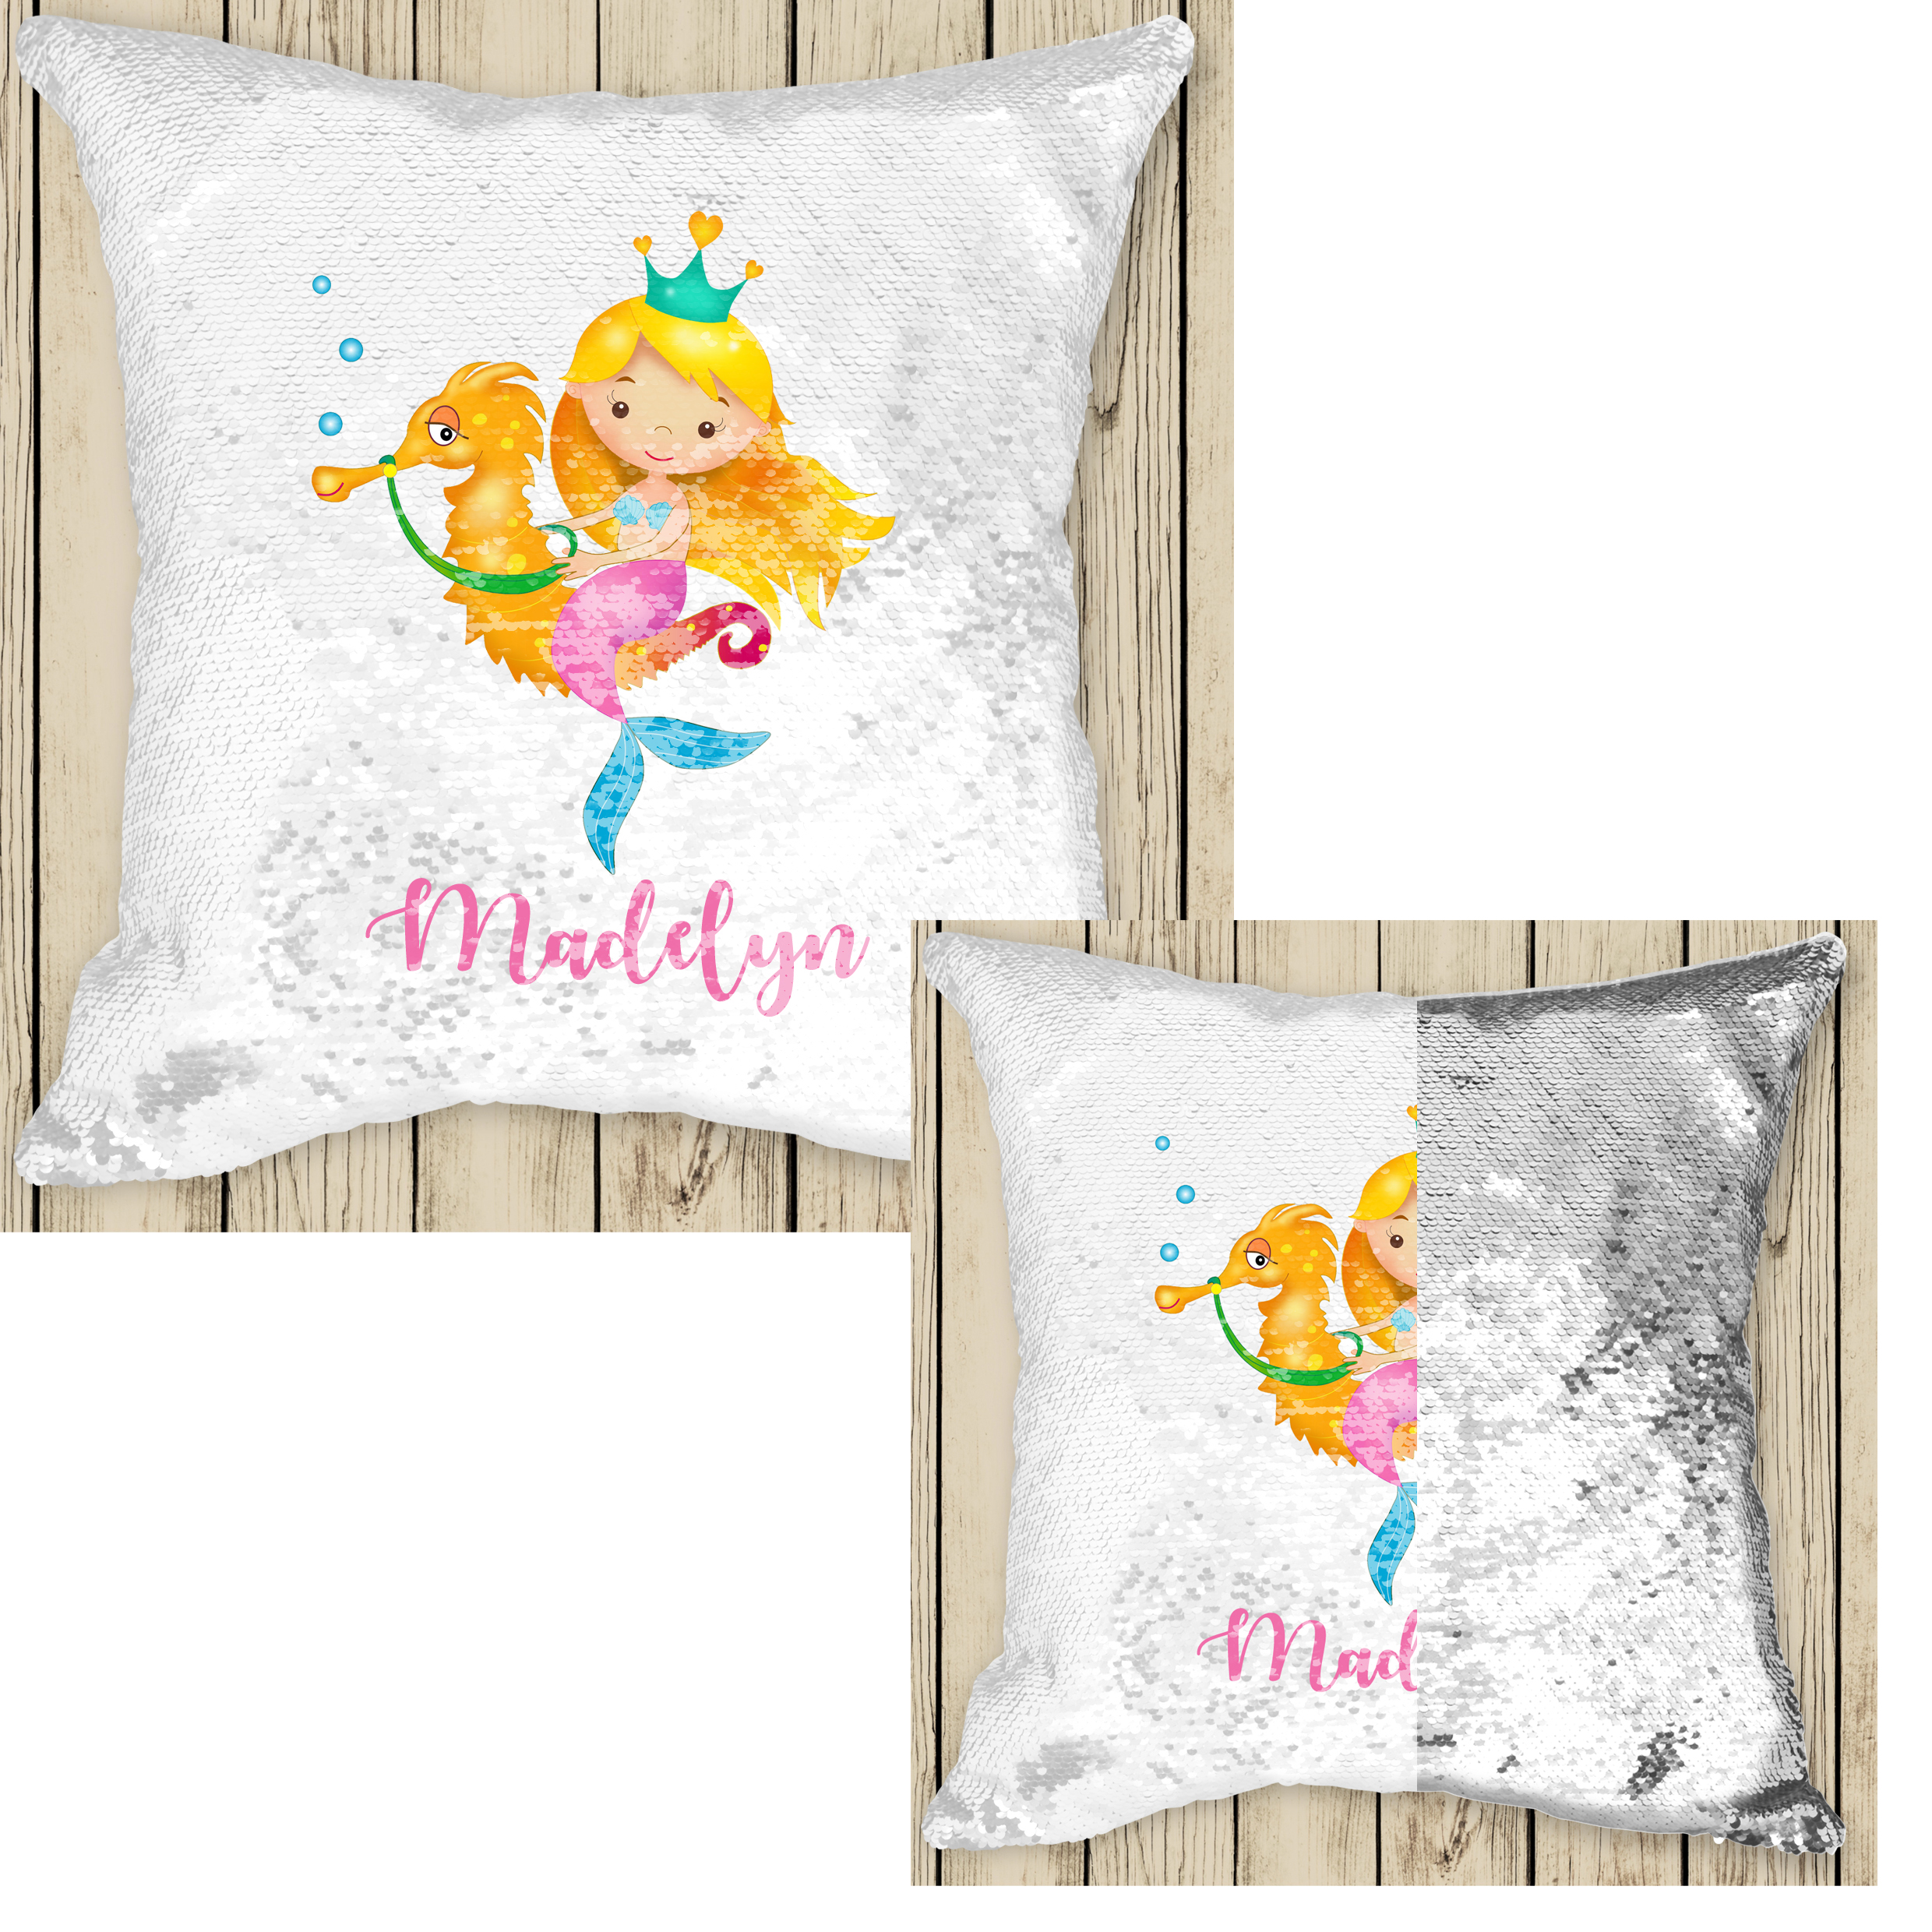 covers cushion cover magic throw inspirational featuring and crystals gemstones pillow quote set gems products